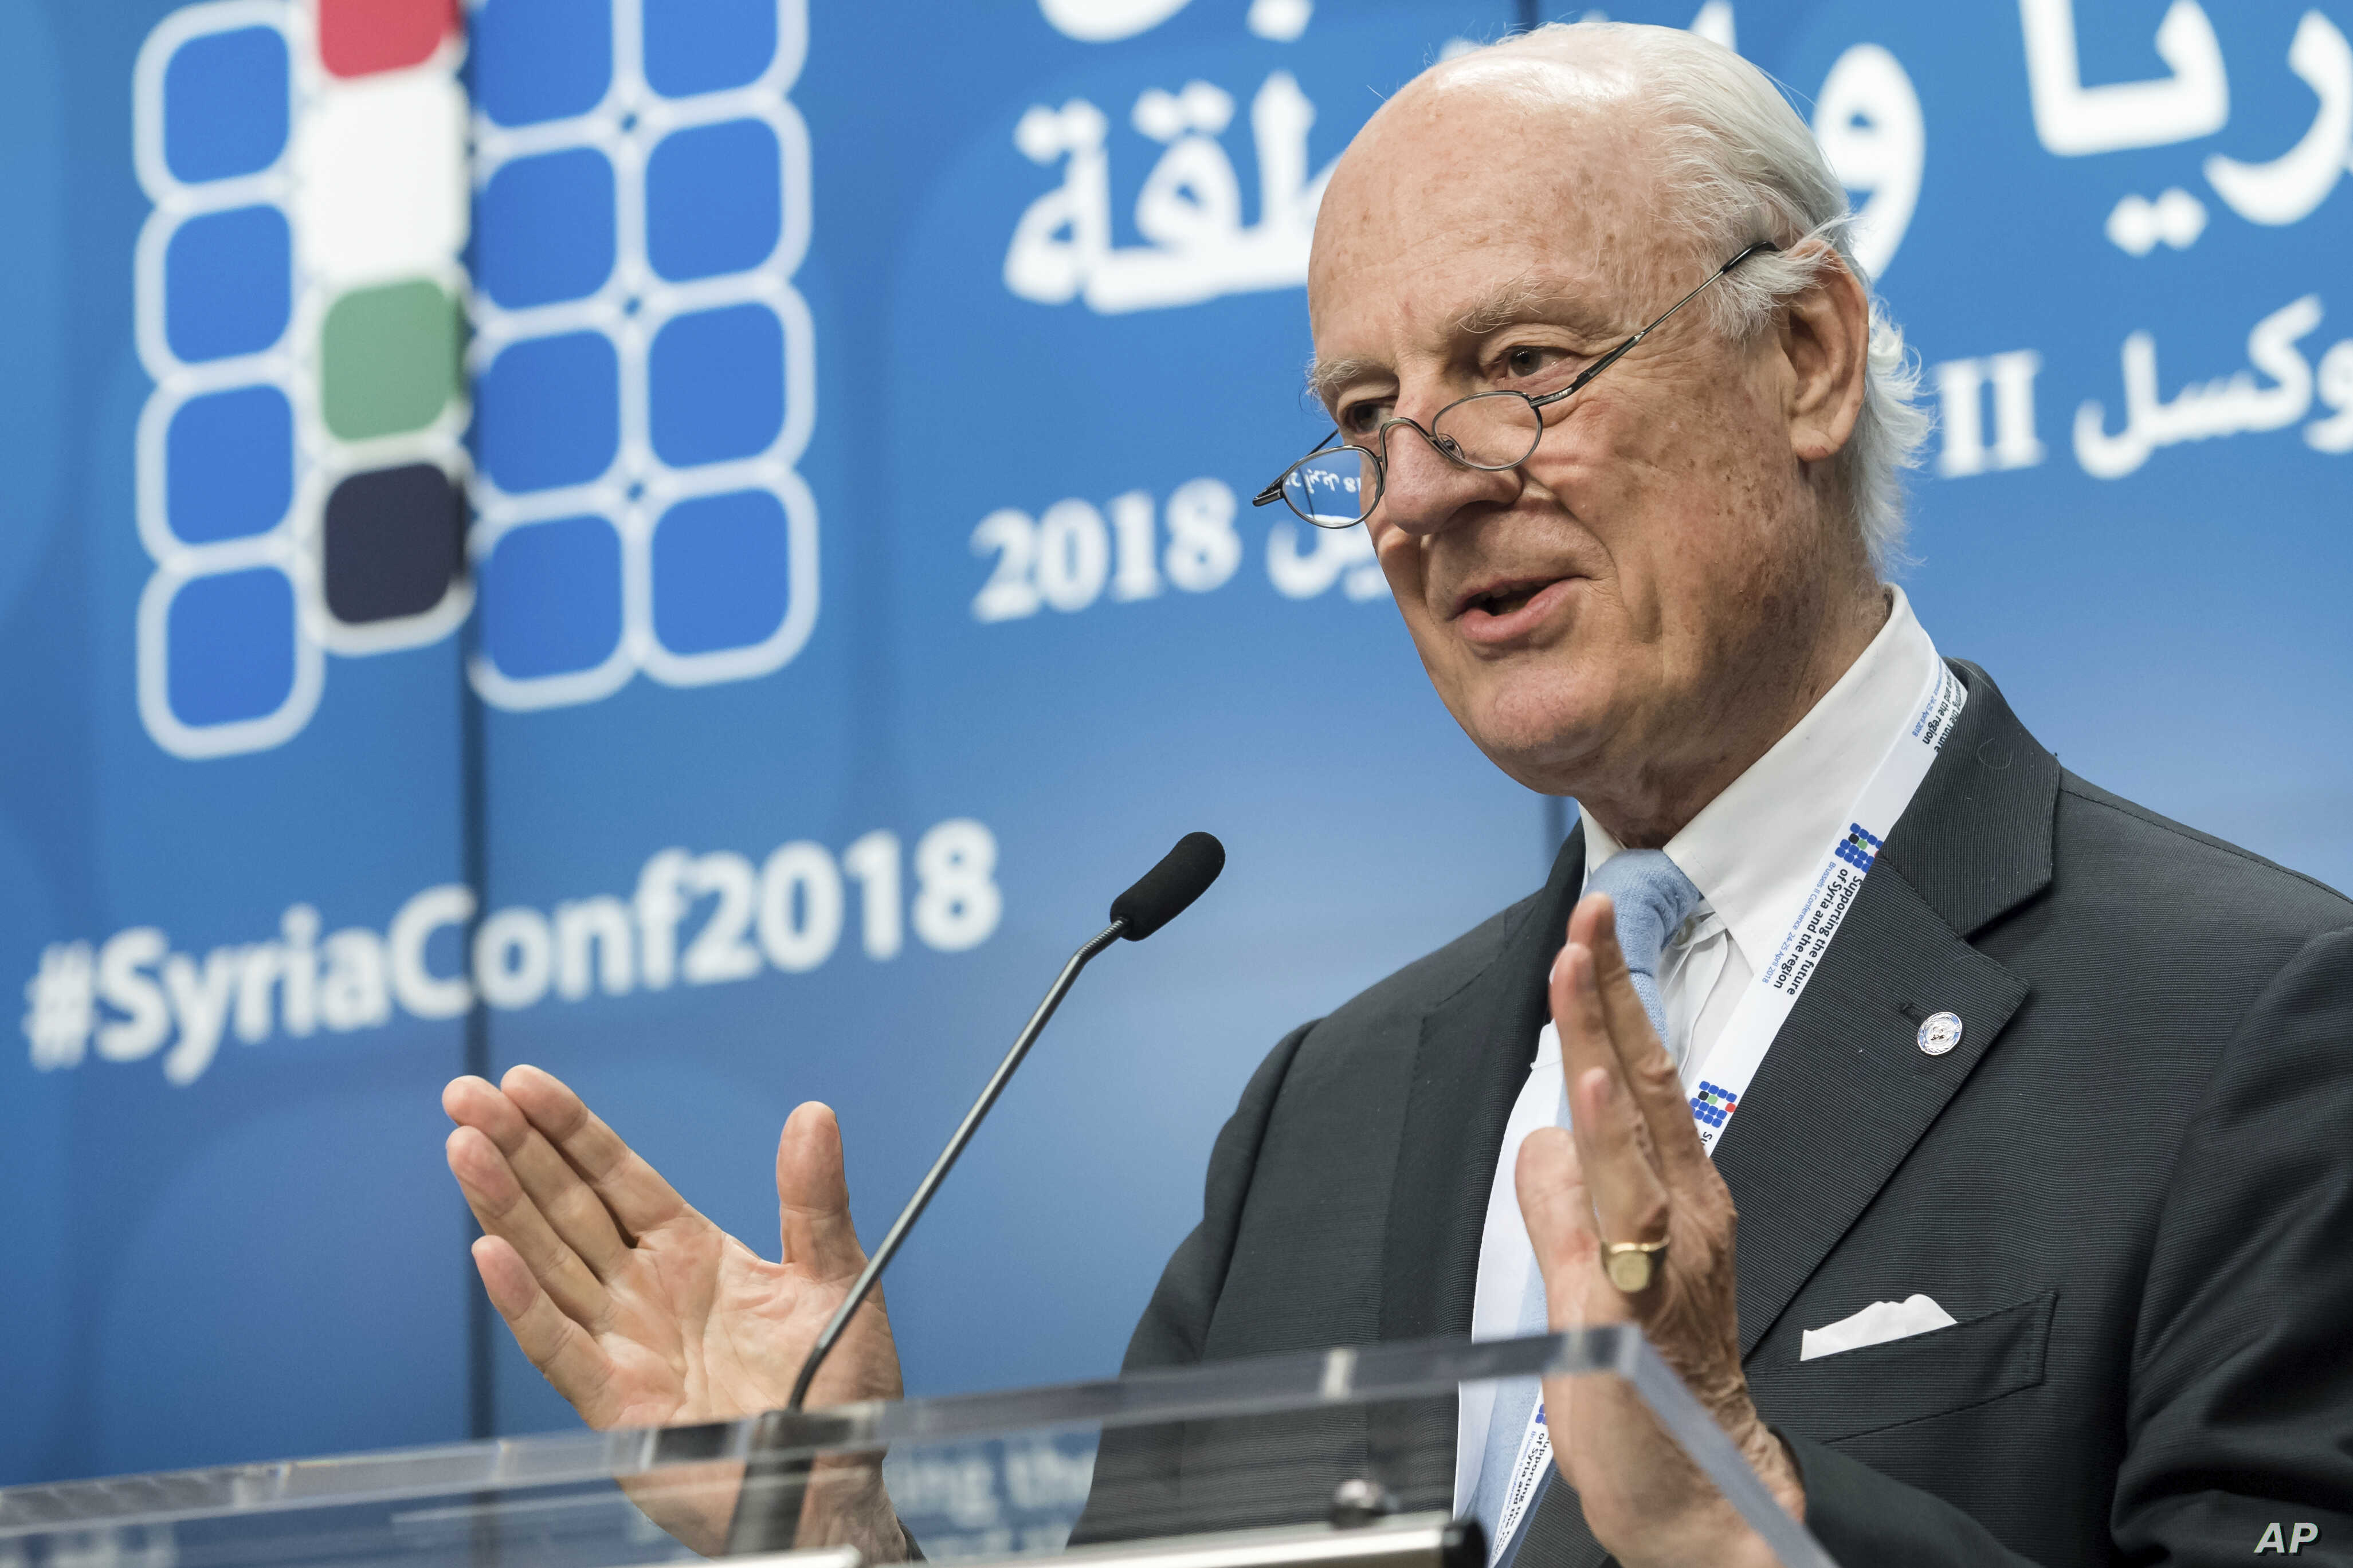 UN Special Envoy of the Secretary-General on Syria Staffan de Mistura addresses the media during a conference 'Supporting the future of Syria and the region' at the EU Council in Brussels on April 25, 2018.